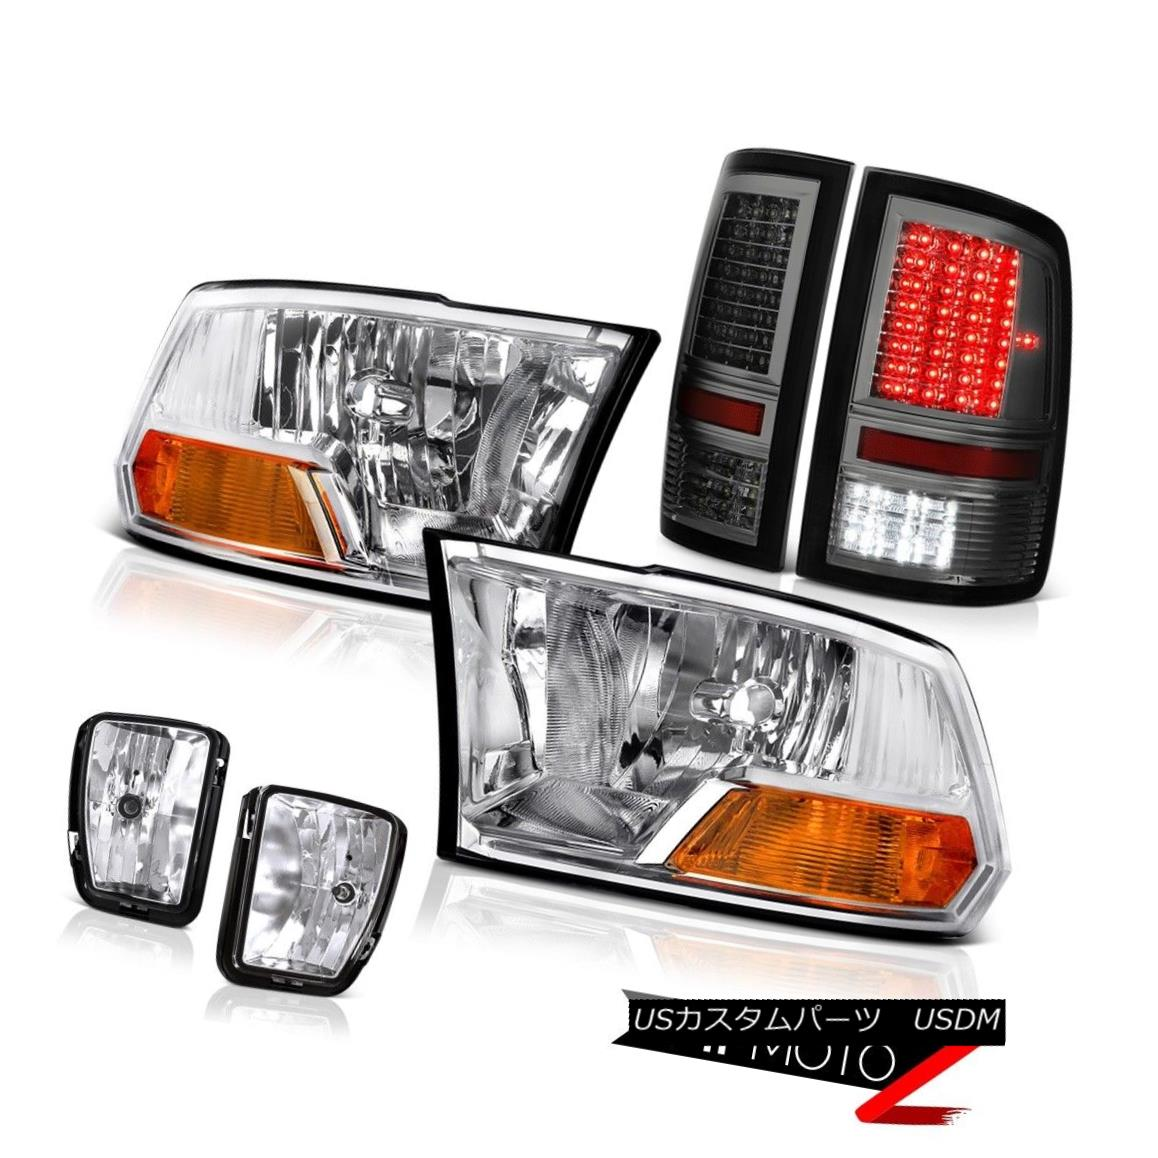 テールライト 13-18 Ram 1500 SLT Rear Brake Lights CrySTal Clear Fog Headlamps LED